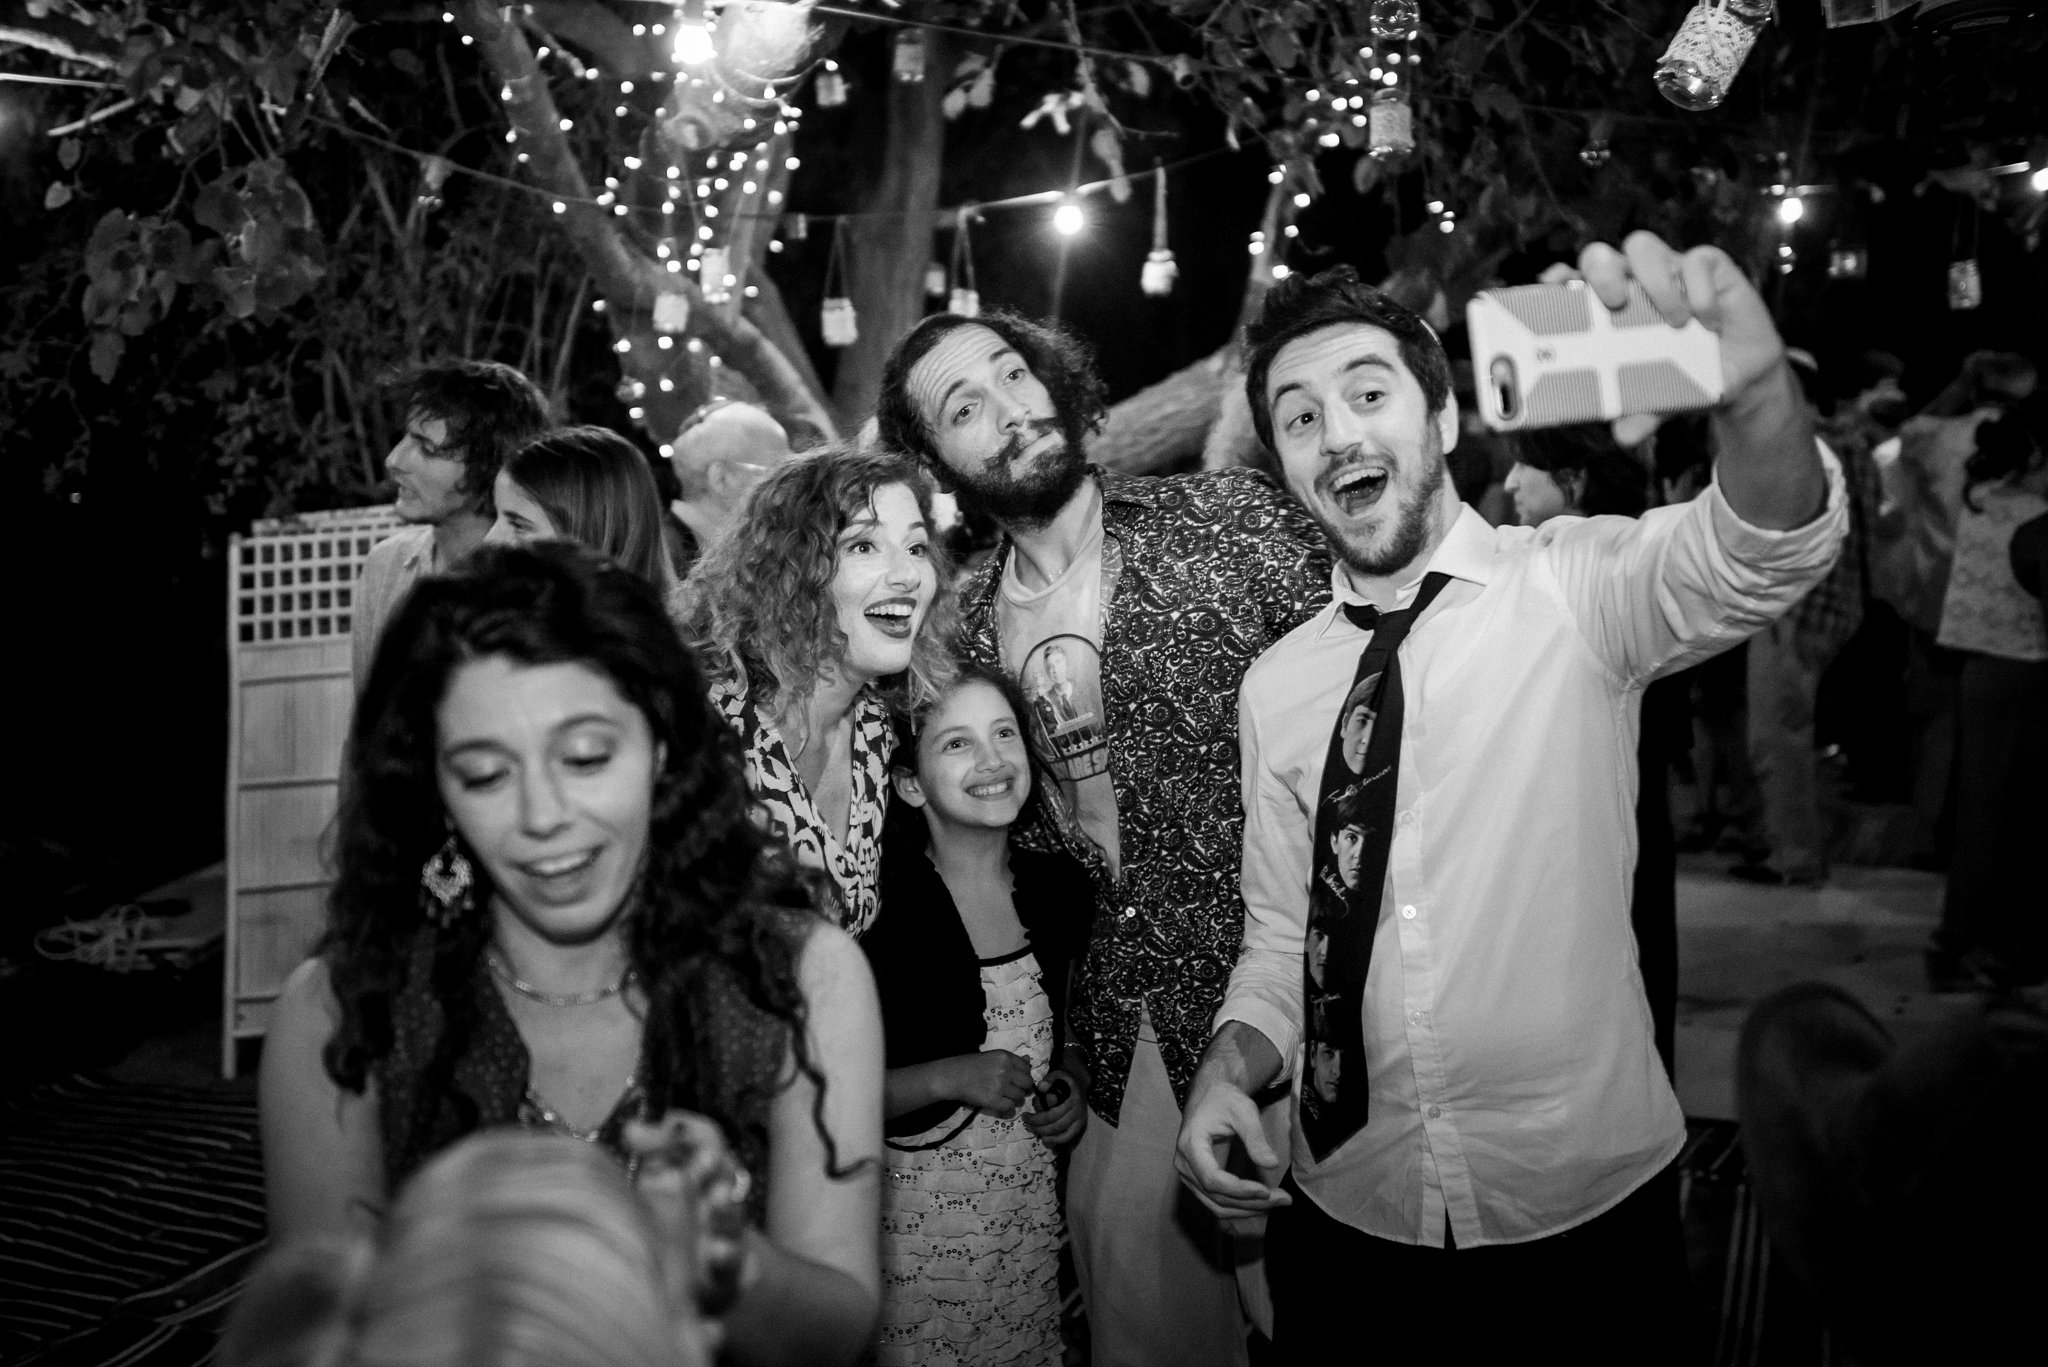 jewish-wedding-binyamina-israel-kate-giryes-photography-237_WEB.jpg